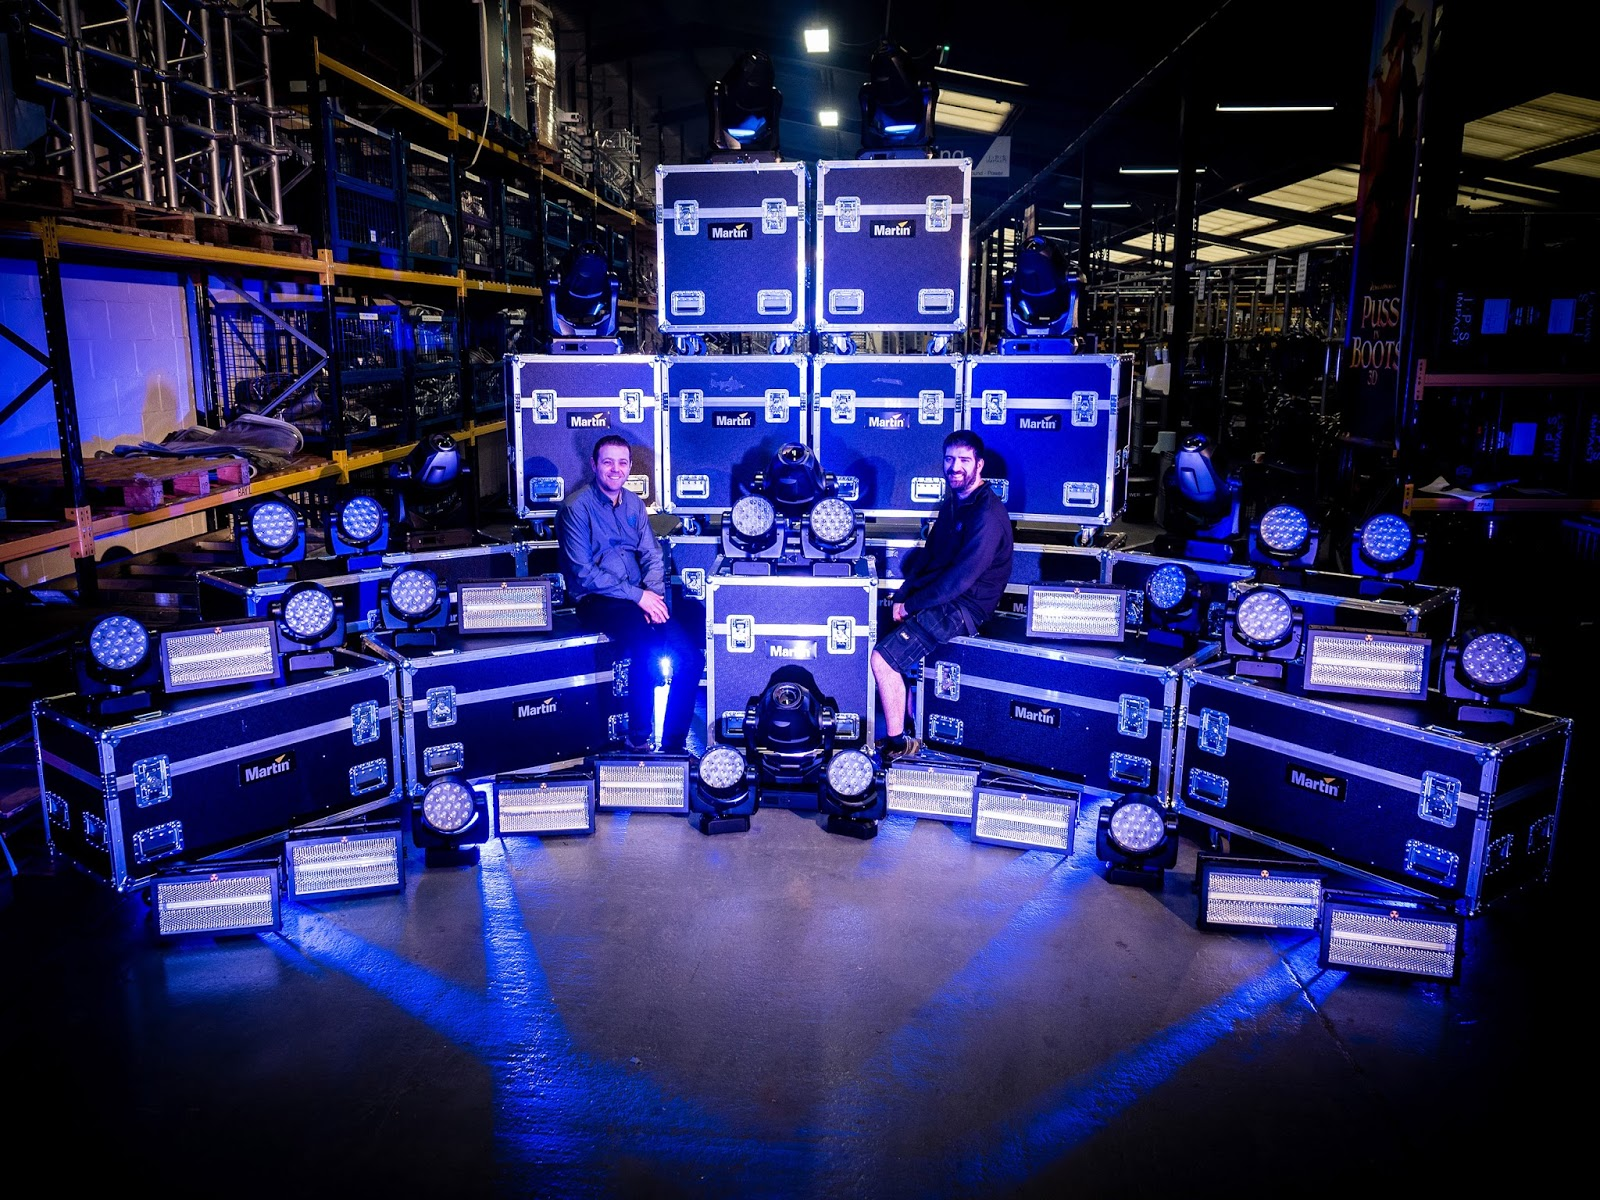 Impact production services goes extra bright with martin by harman milton keynes ukimpact production services ips has added more than 100 lighting fixtures from martin by harman to its rental stock arubaitofo Images